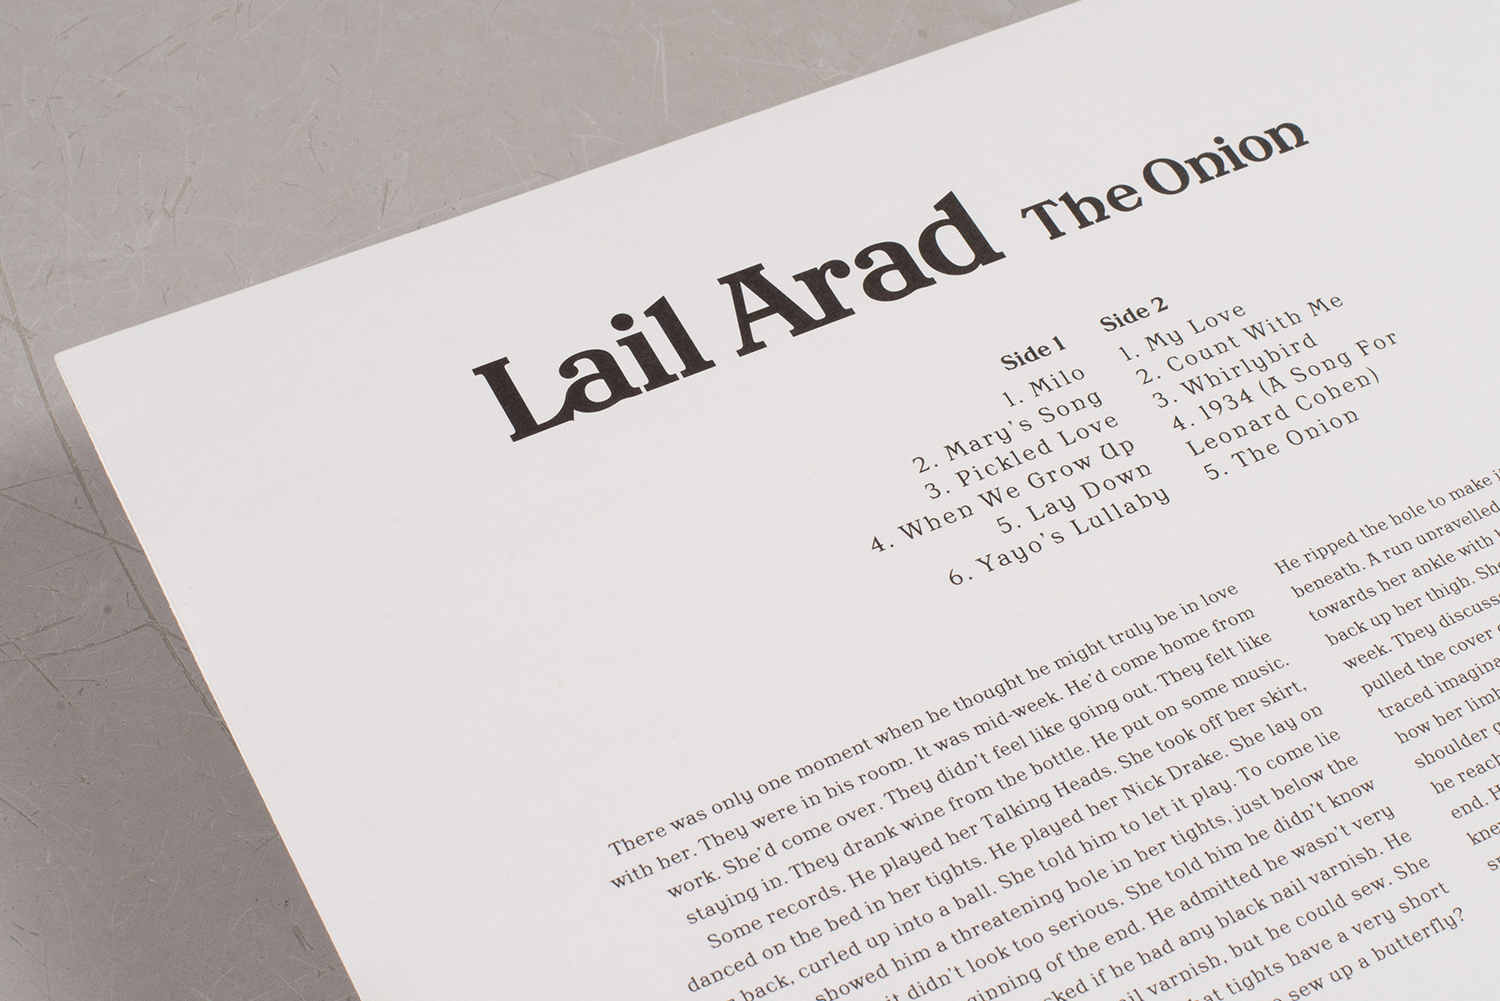 Lail Arad, The Onion LP, The Vinyl Factory_0004_untitled (11 of 27)